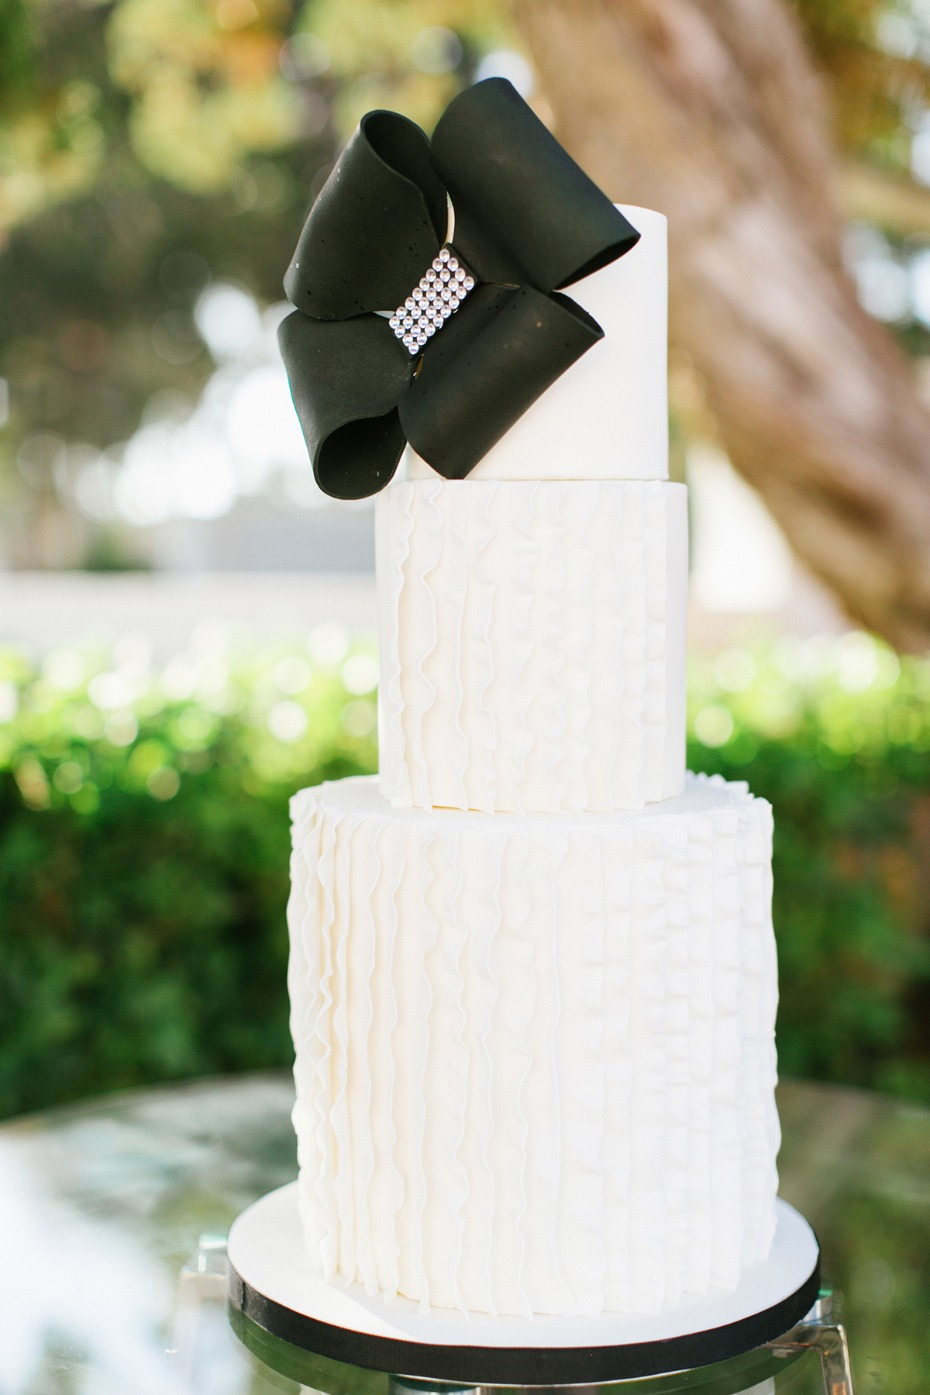 Modern white ruffle cake with black bow